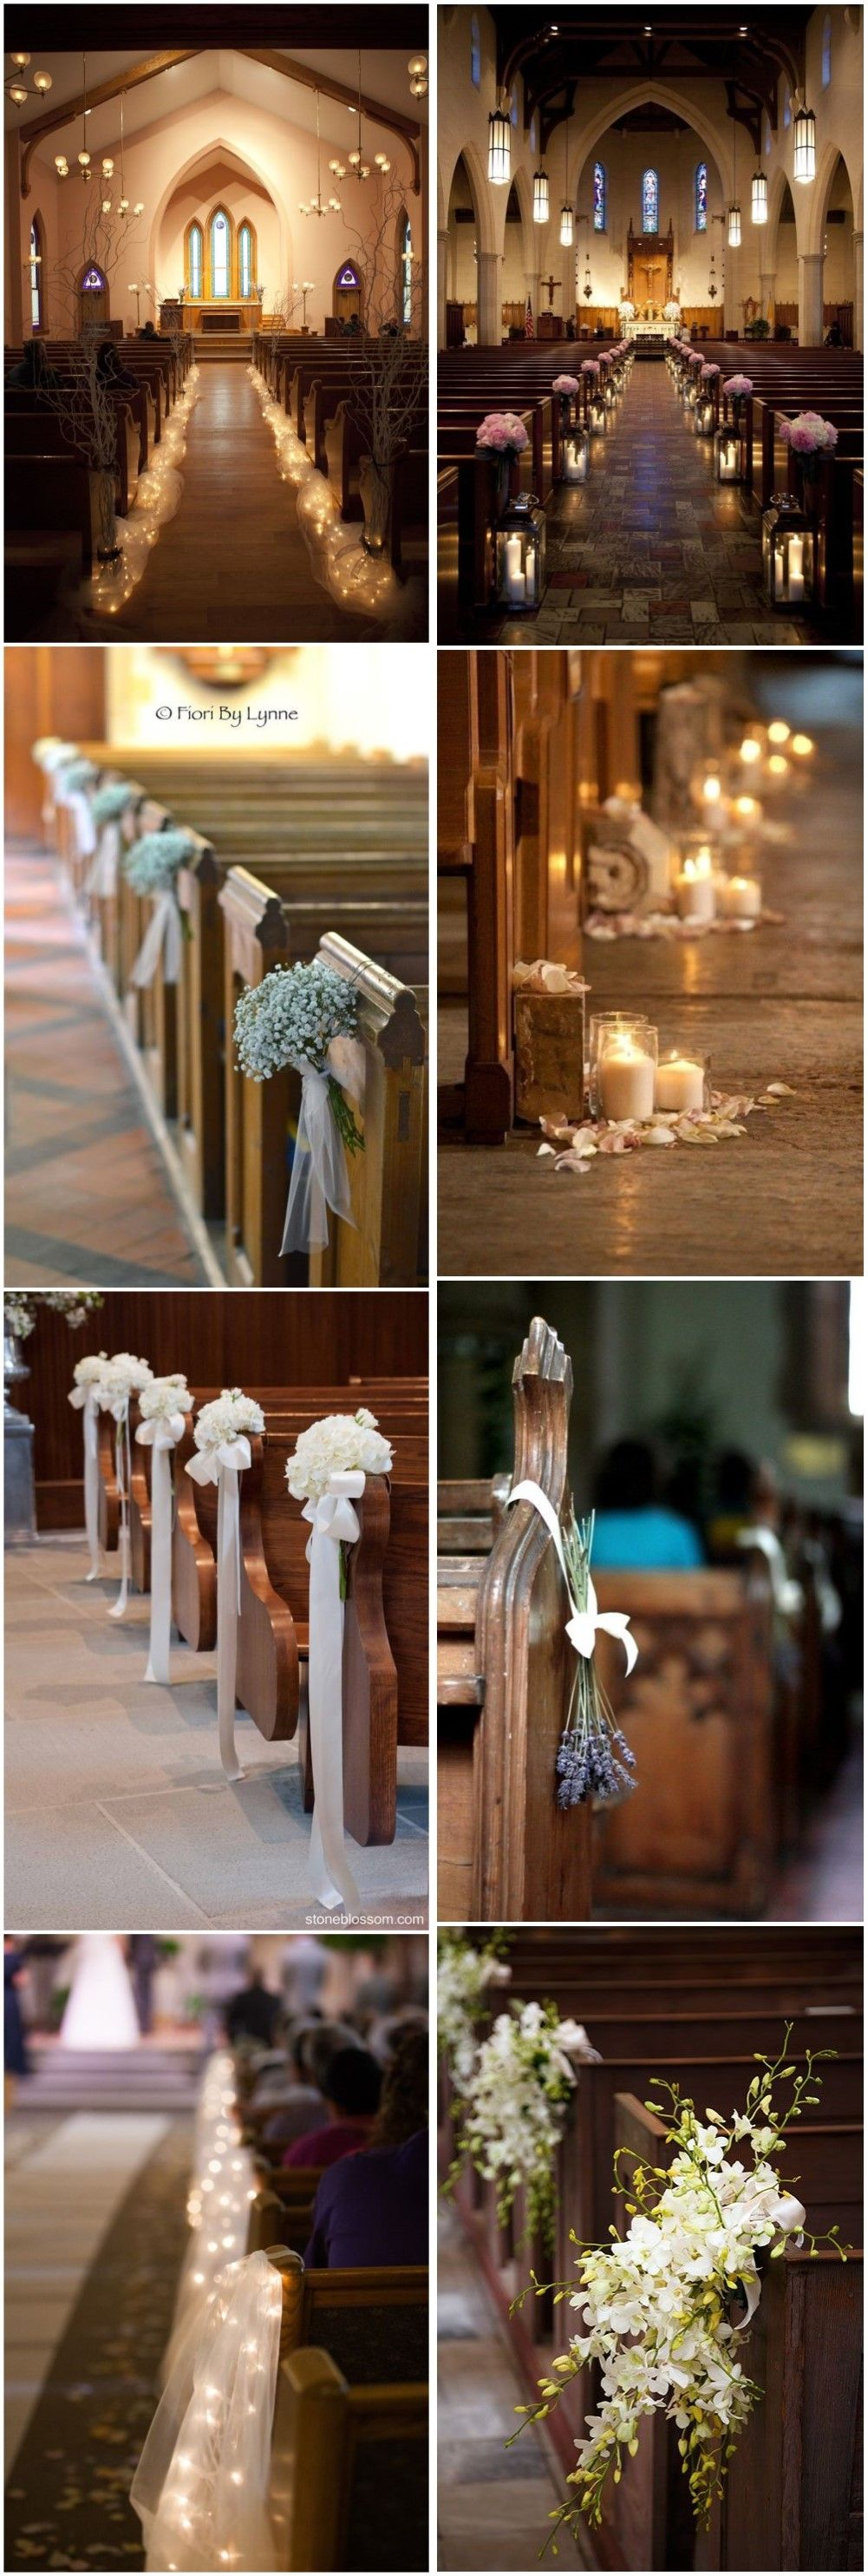 21 Stunning Church Wedding Aisle Decoration Ideas To Steal Weddinginclude Wedding Aisle Decorations Church Aisle Decorations Wedding Church Decor